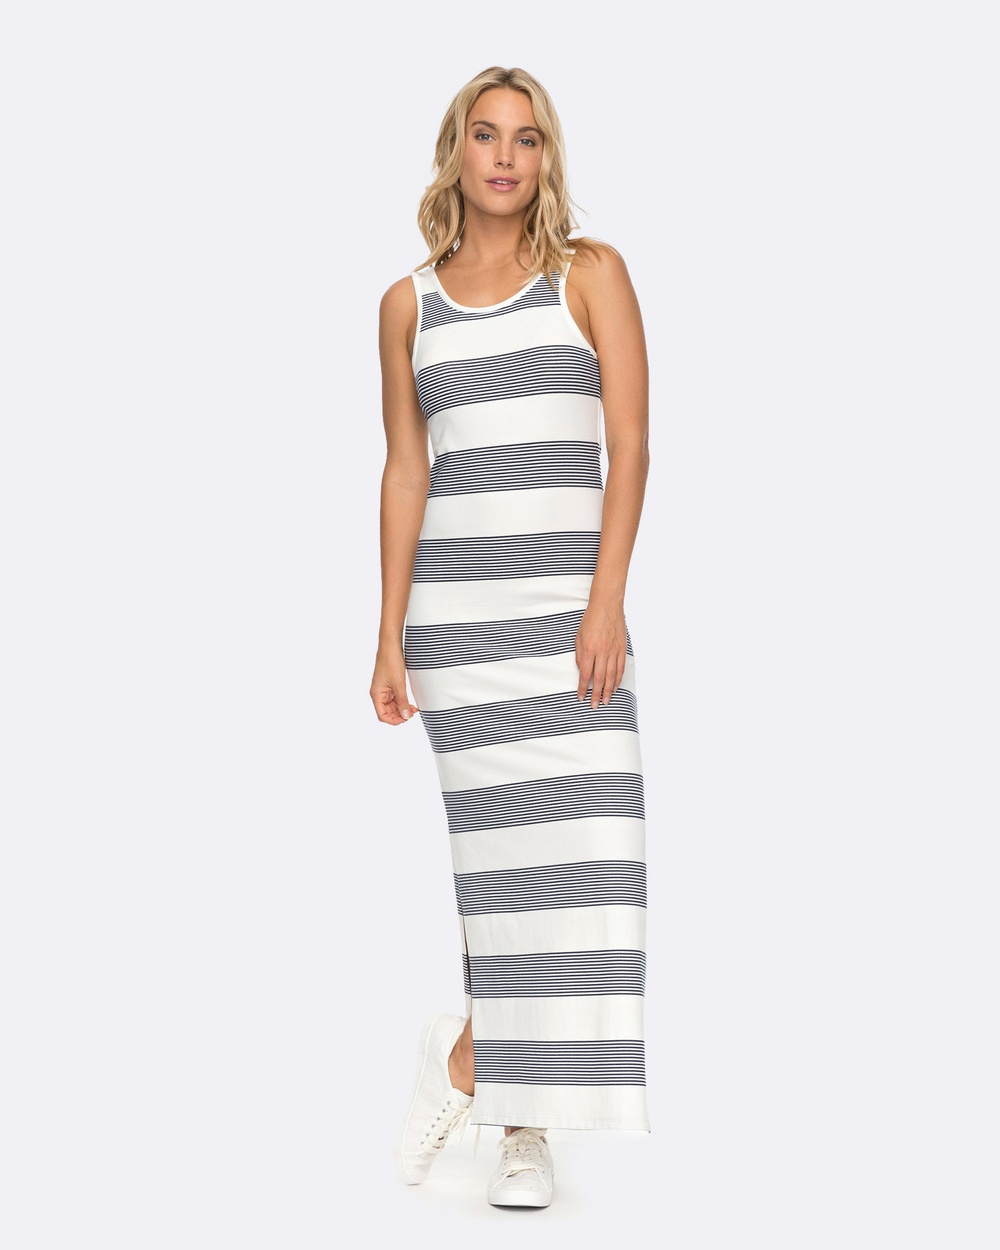 Roxy Womens Tuba Bold Stripe Knit Tank Midi Dress Bodycon Dresses MARSHMALLOW DRESS BL Womens Tuba Bold Stripe Knit Tank Midi Dress